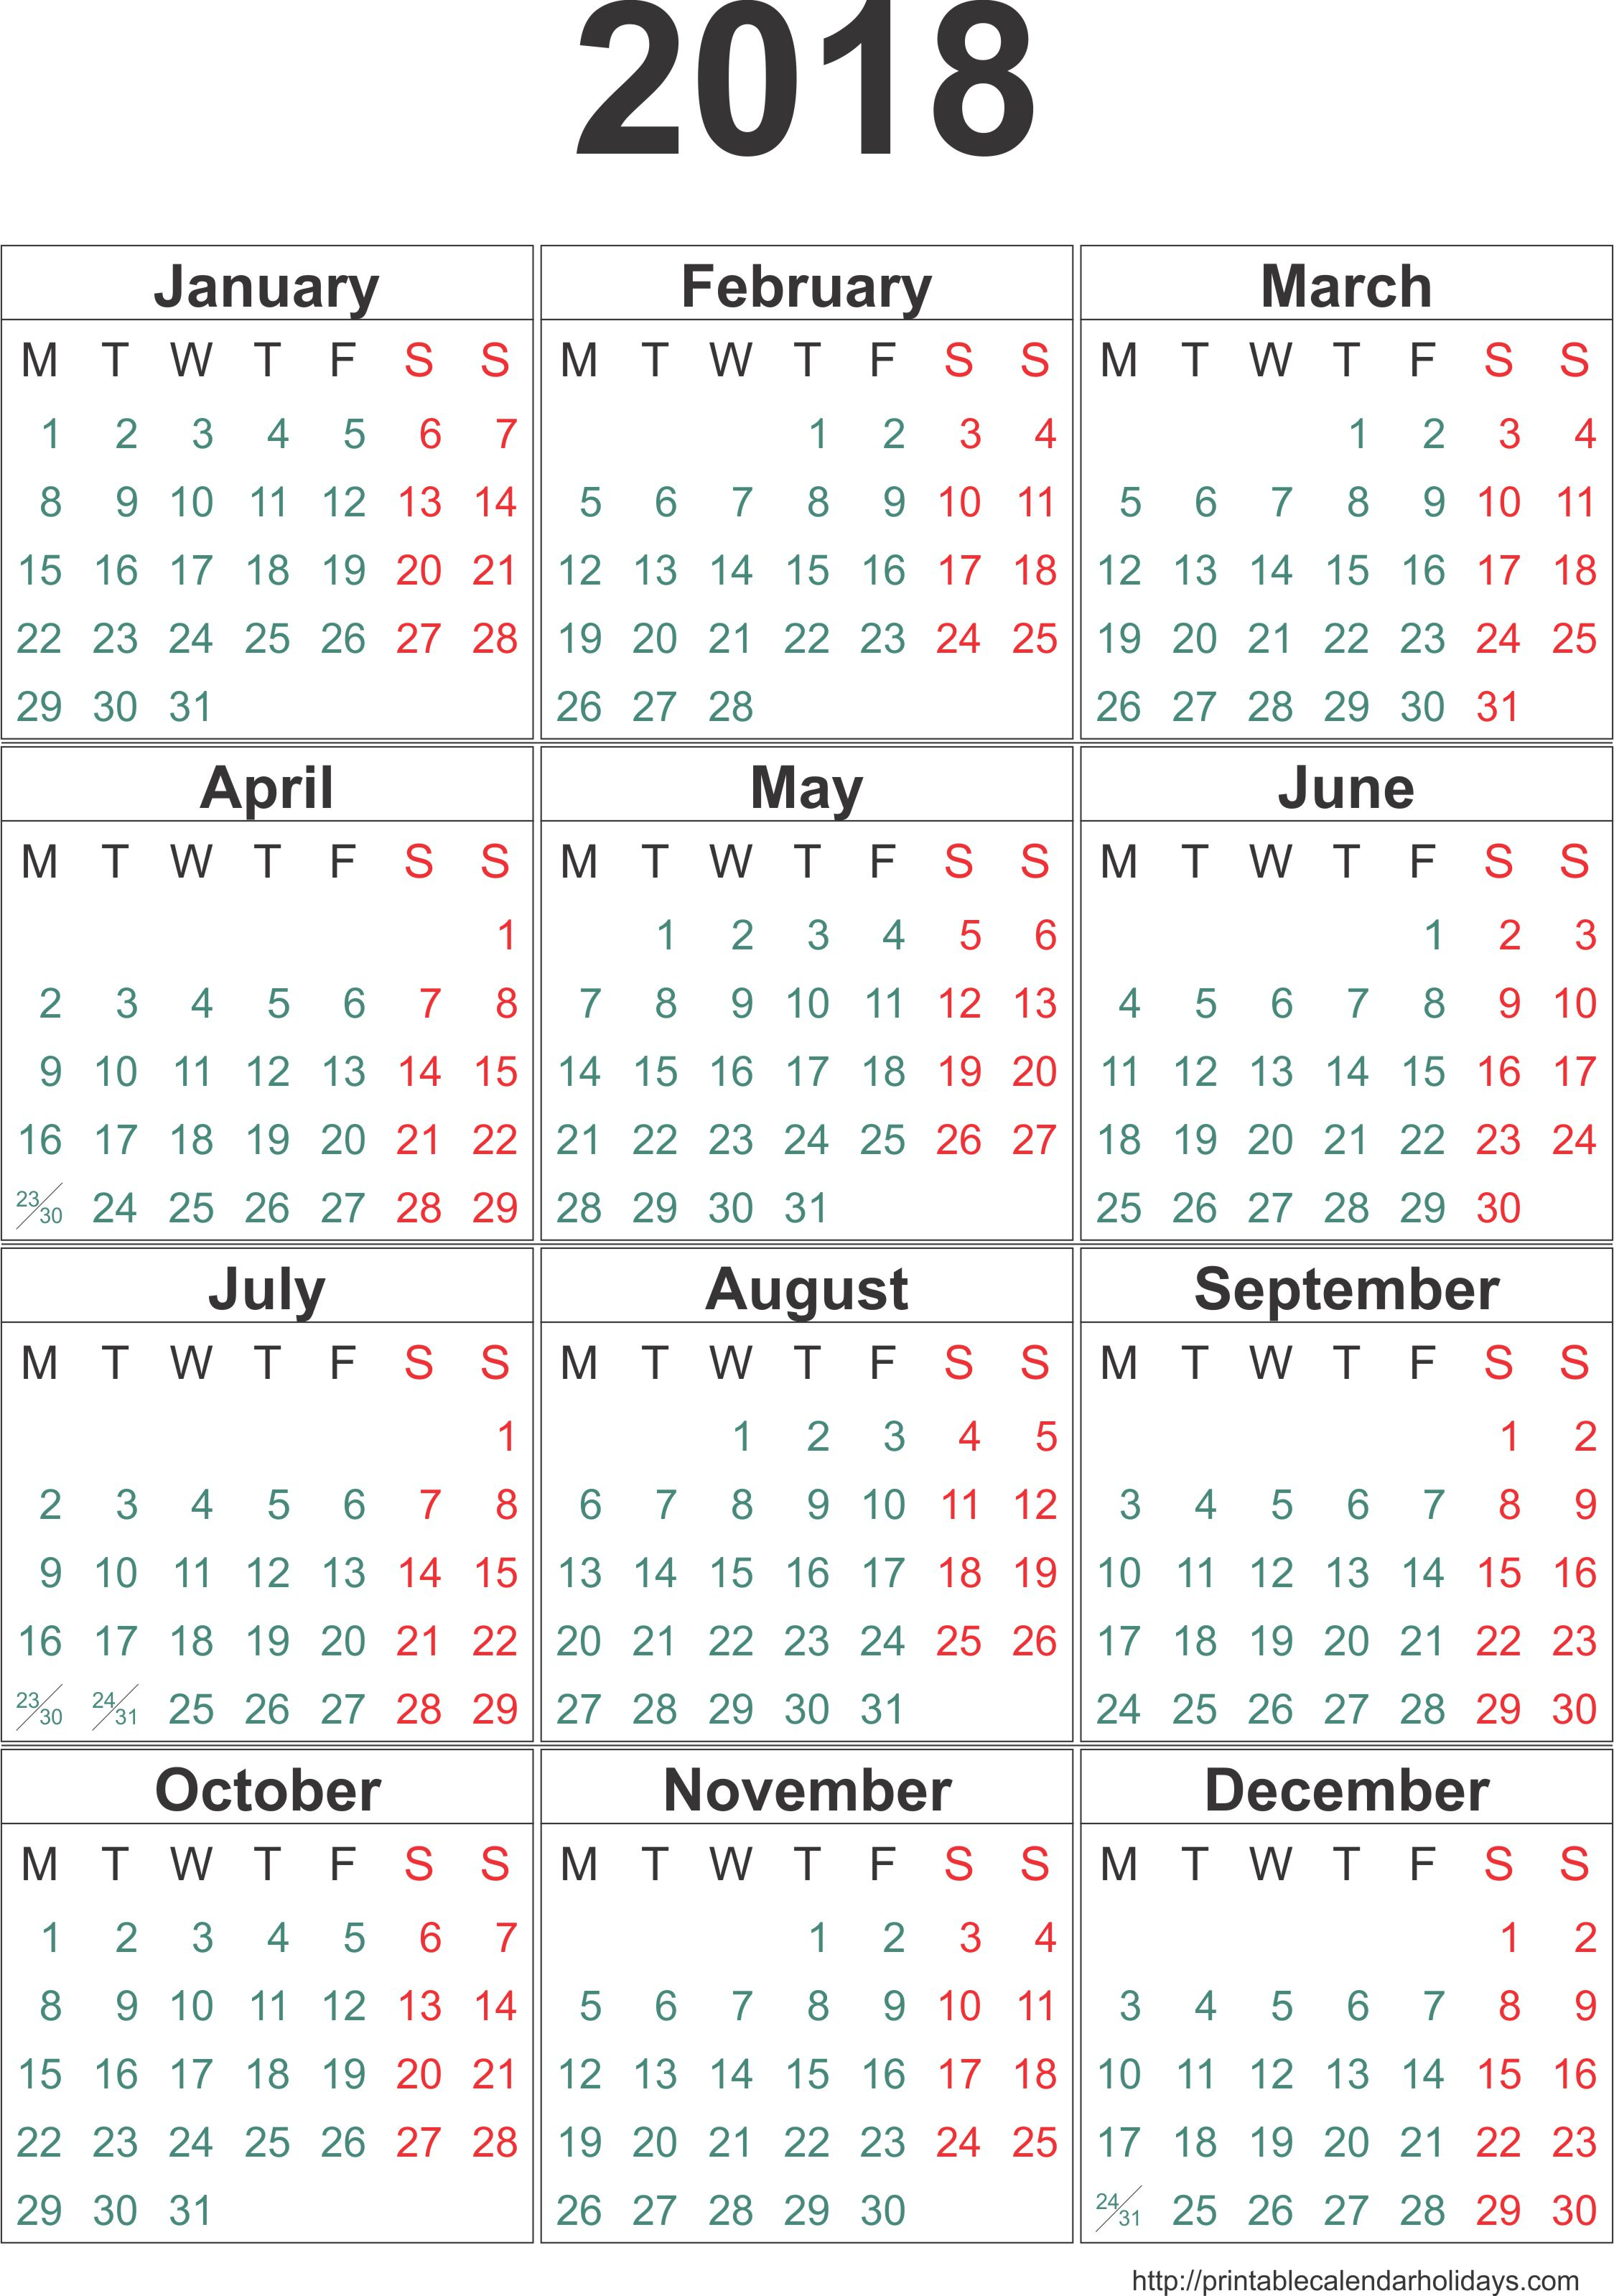 Calendar 2018 Template (12 Months/page) - Printable 2017 2018 2019 inside 12 Month Calendar Template Printable